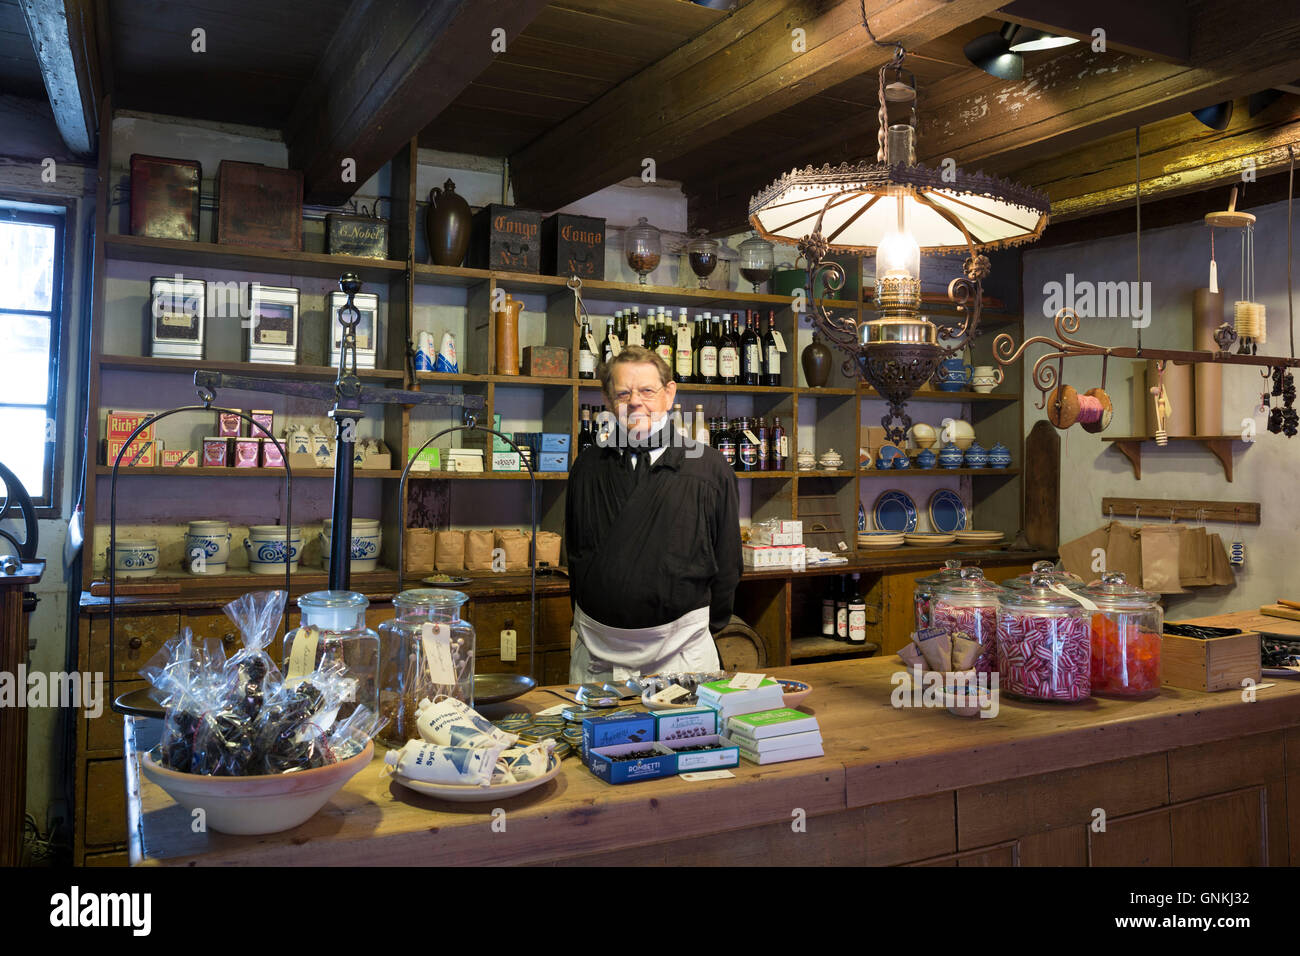 Shop interior at Den Gamle By, The Old Town, open-air folk museum at Aarhus,  East Jutland, Denmark - Stock Image